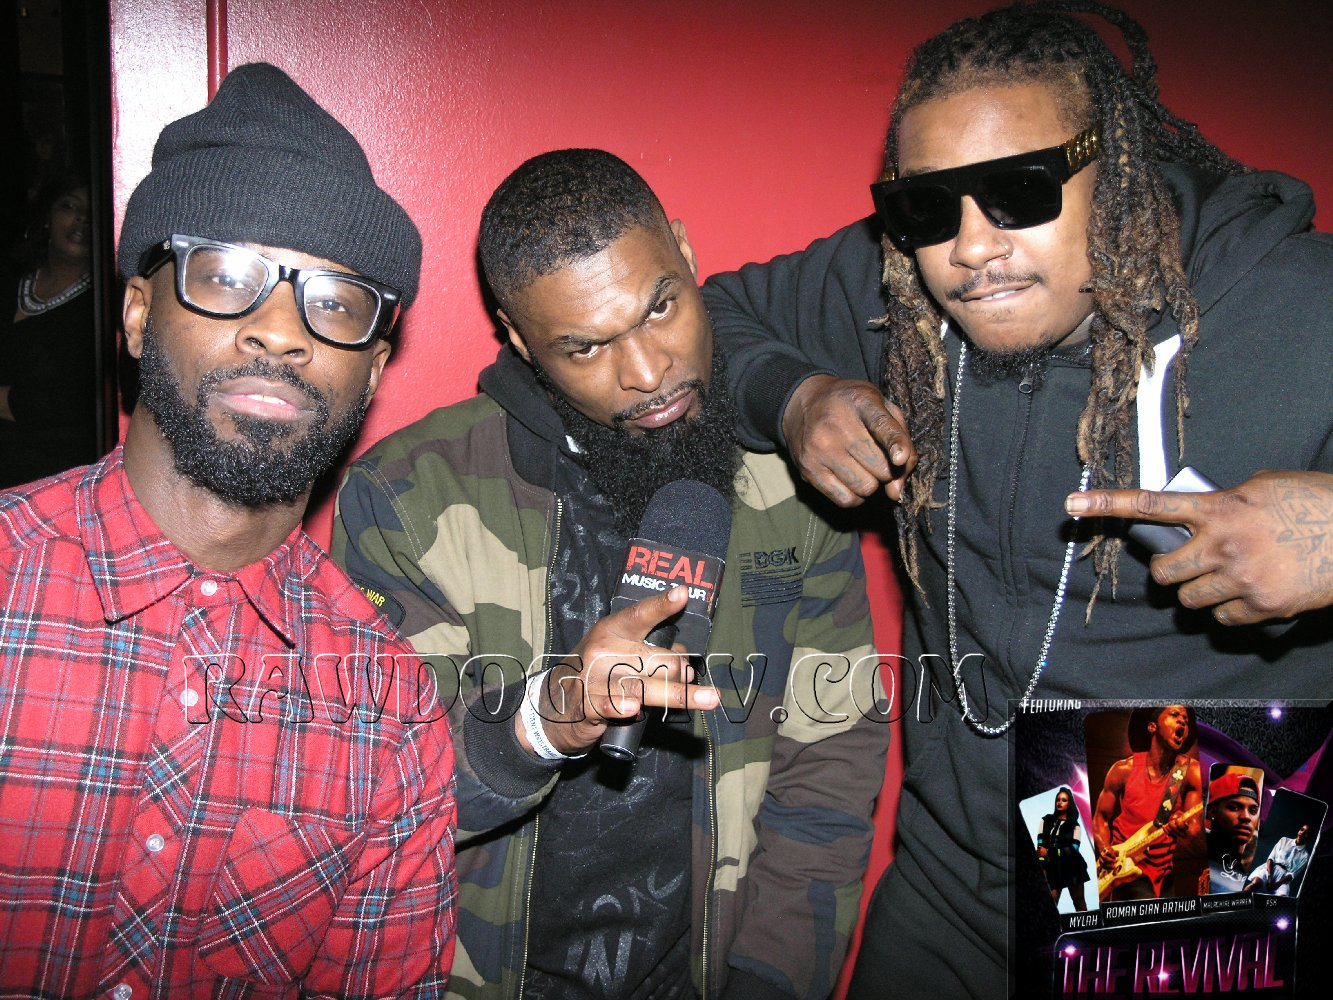 THE REVIVAL R&B SHOWCASE PHOTOS 2015 brian michael cox Atlanta Roman Gianarthur, Mylah, Malachiae, b cox, Real Music Tour-RAWDOGGTV 305-490-2182 Viral Marketing (11)